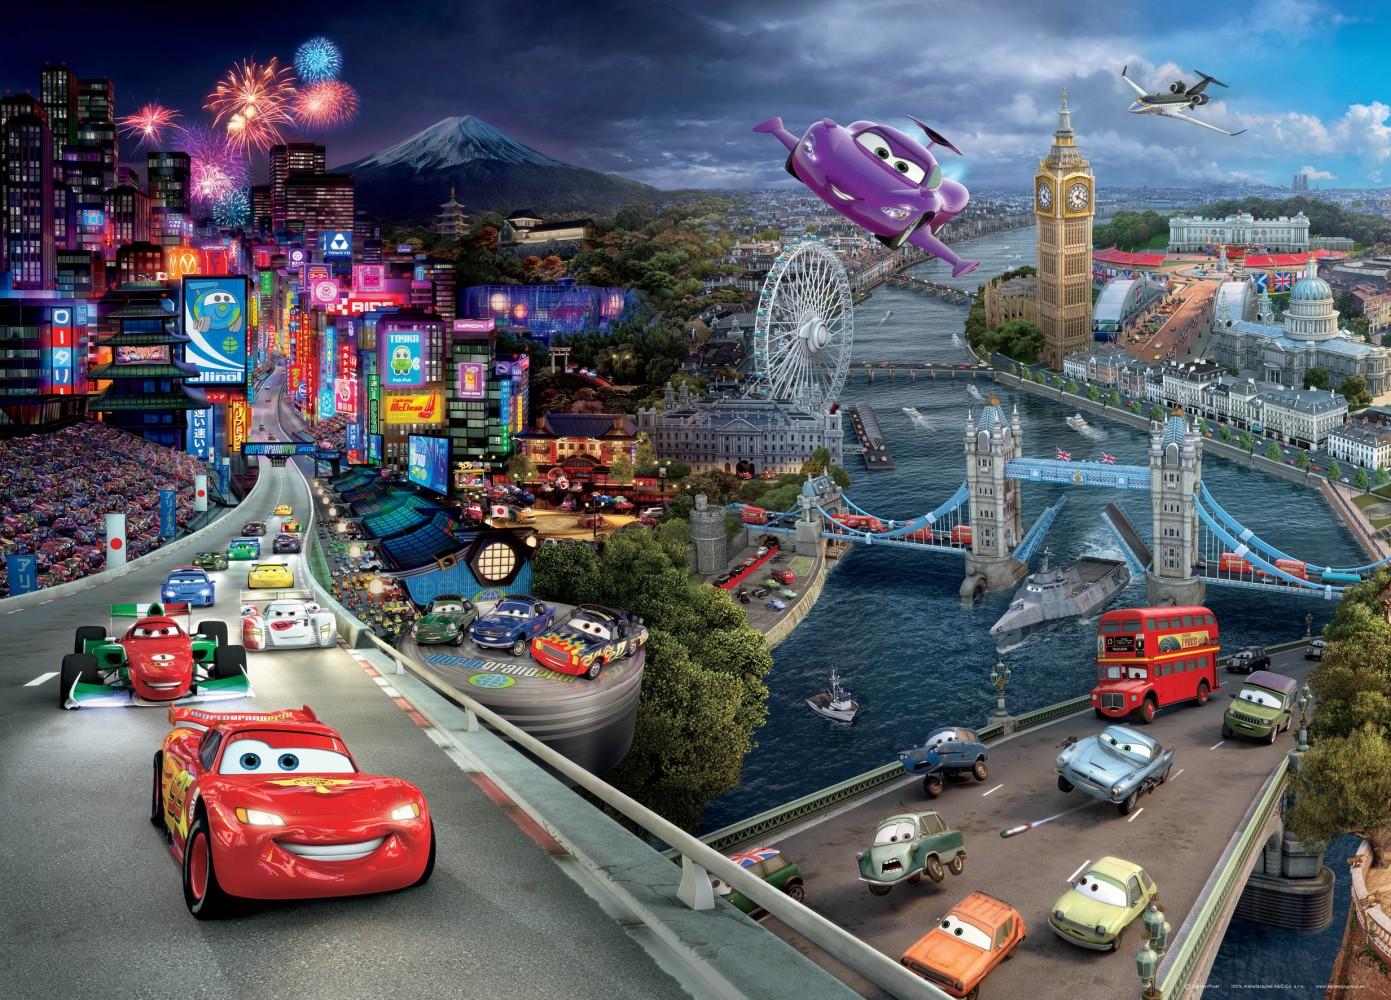 Xxl poster wall mural wallpaper disney pixxar cars 2 cars for Car wallpaper mural